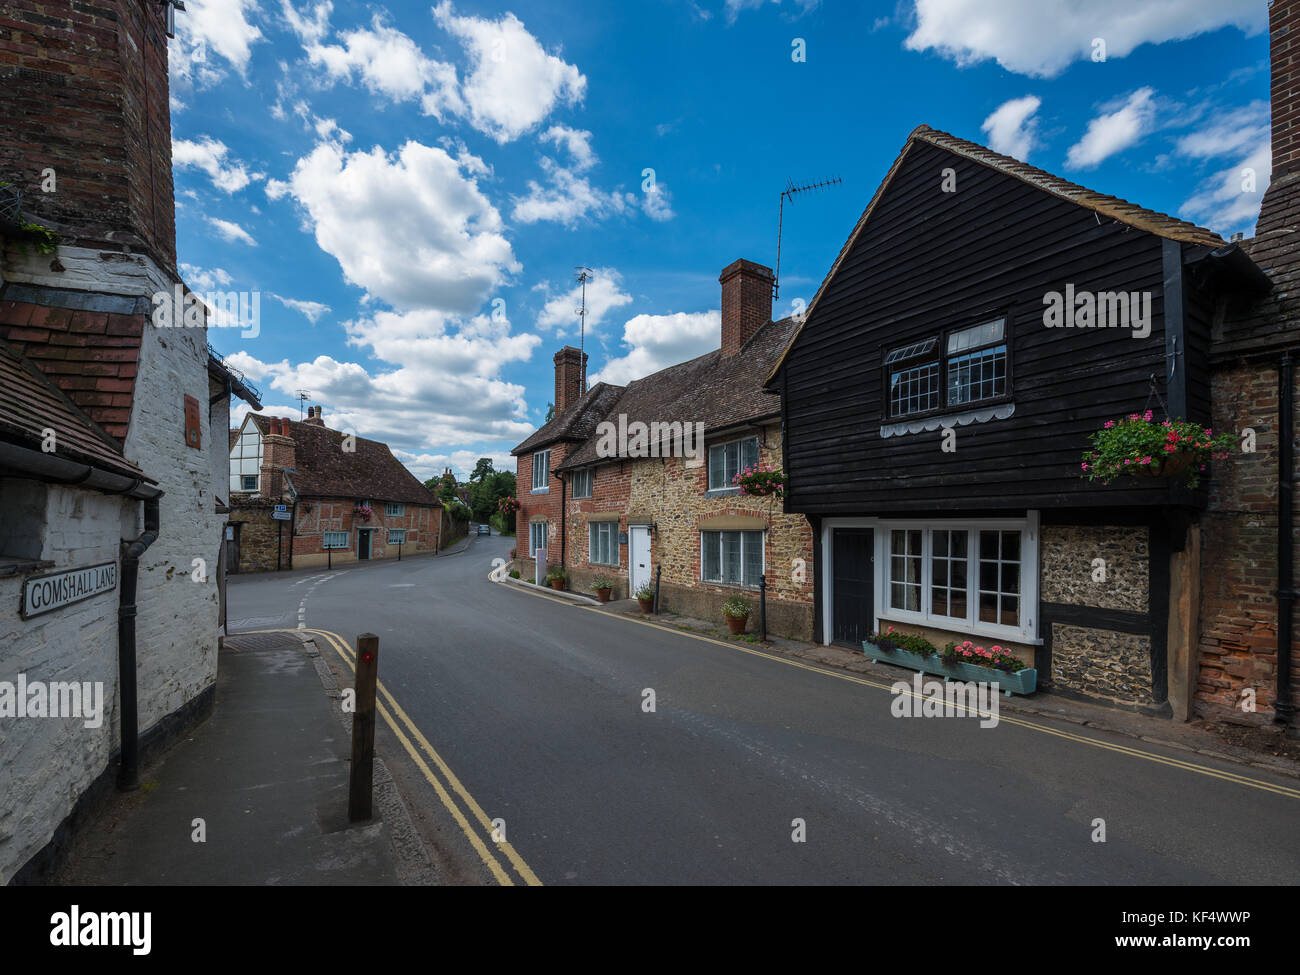 Traditional houses of the village of Shere in the Guildford district of Surrey, United Kingdom - Stock Image